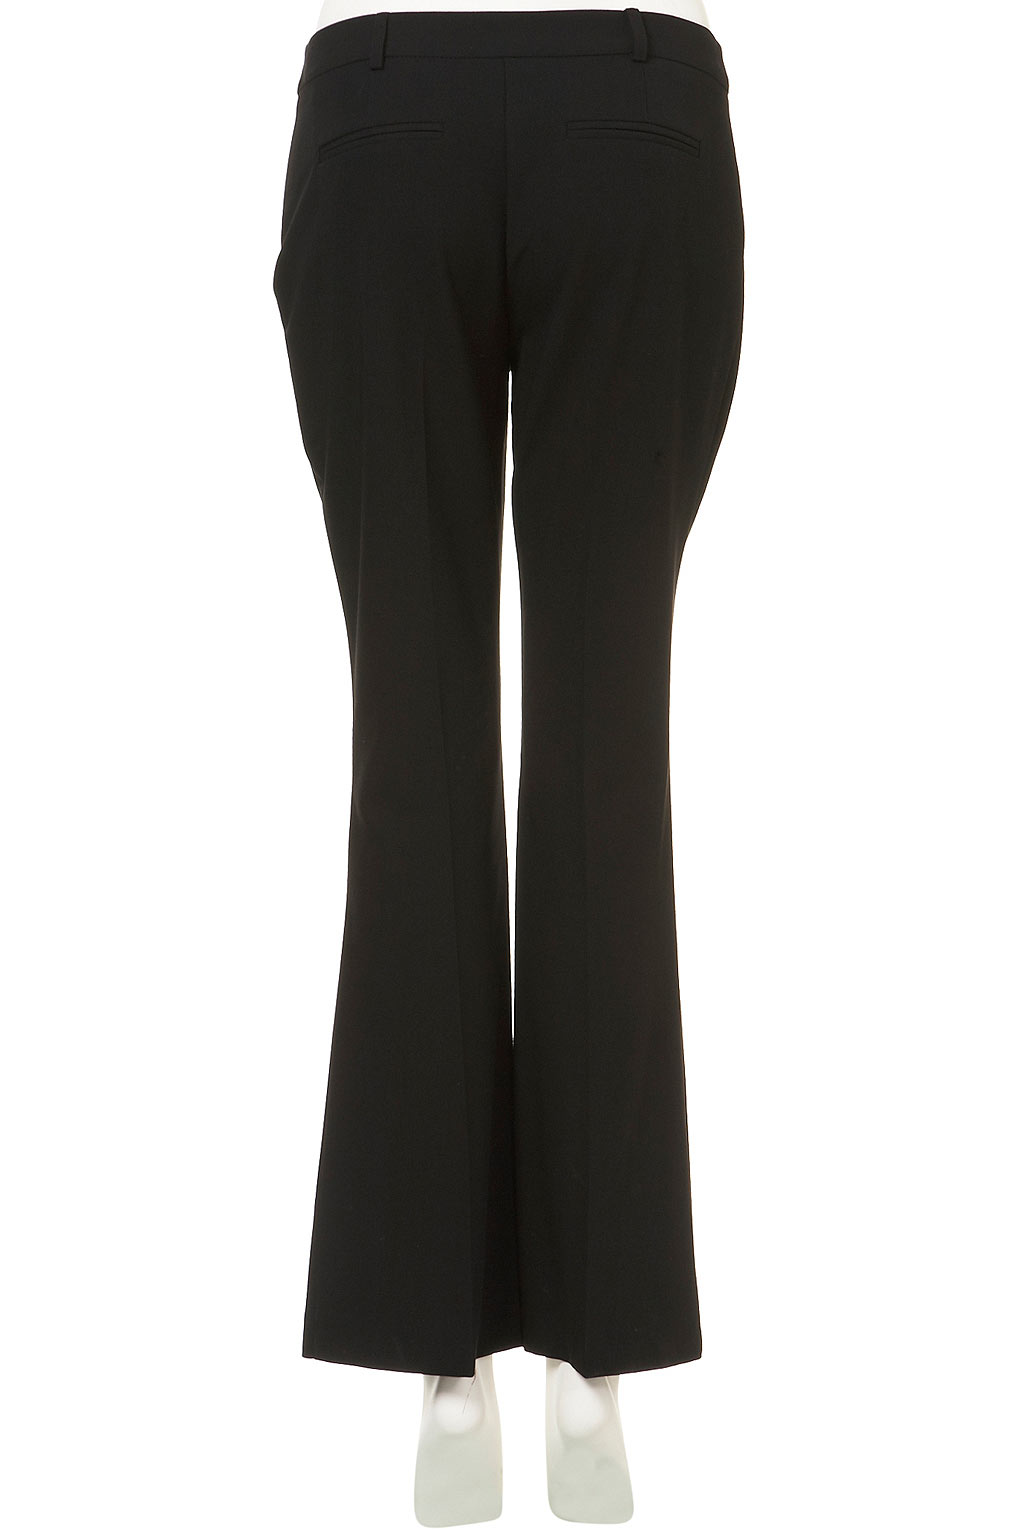 Black bootcut trousers topshop